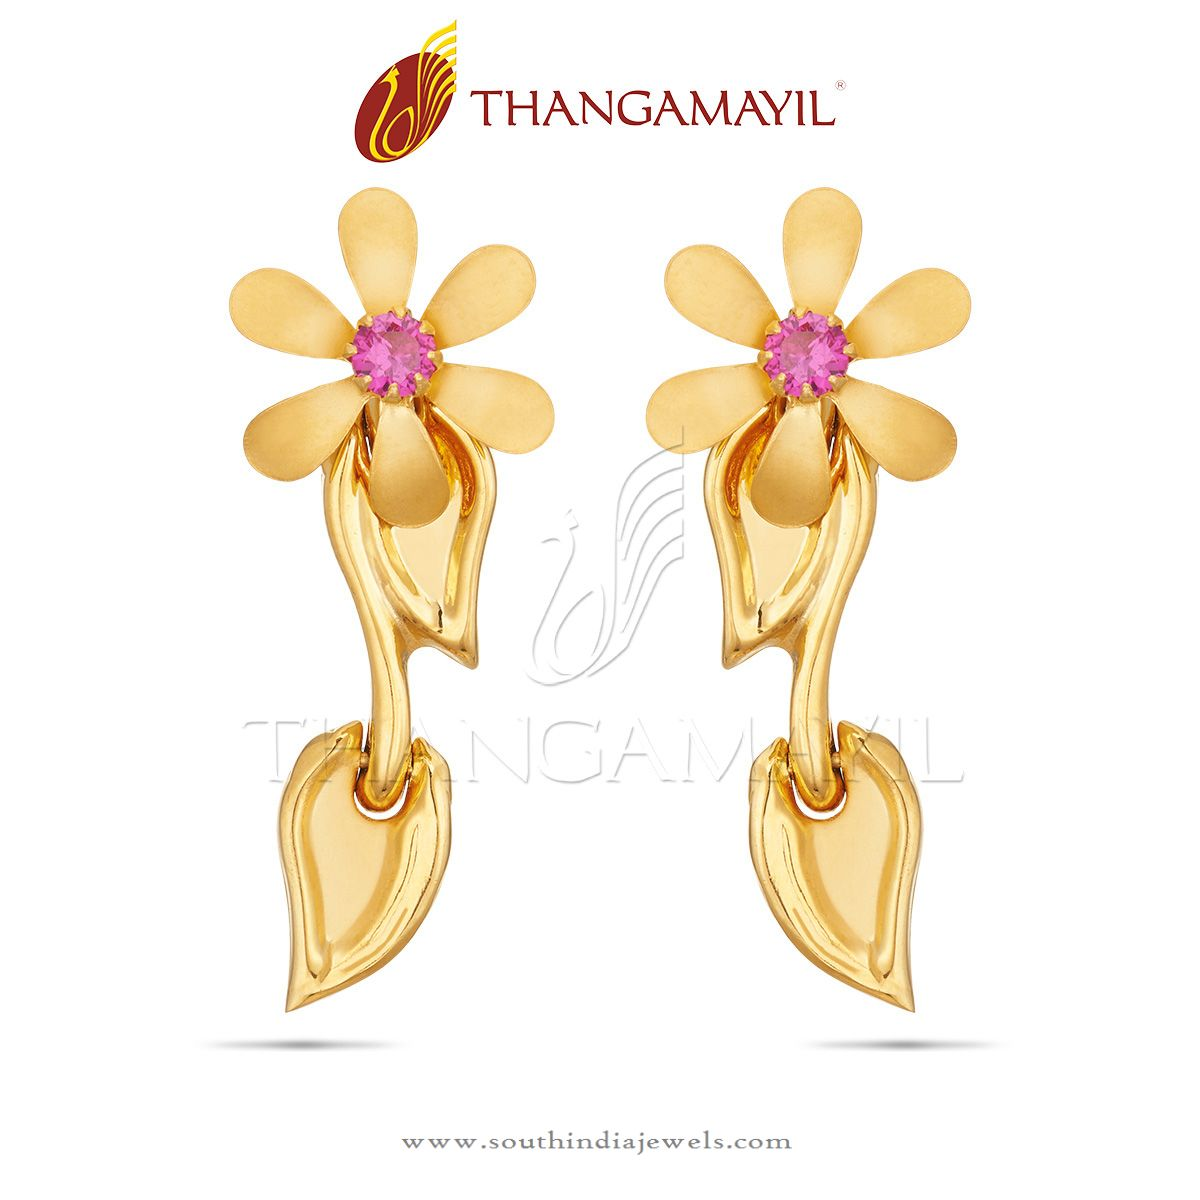 product pure precious earrings earring stud fancy design ashree hallmark bis gold